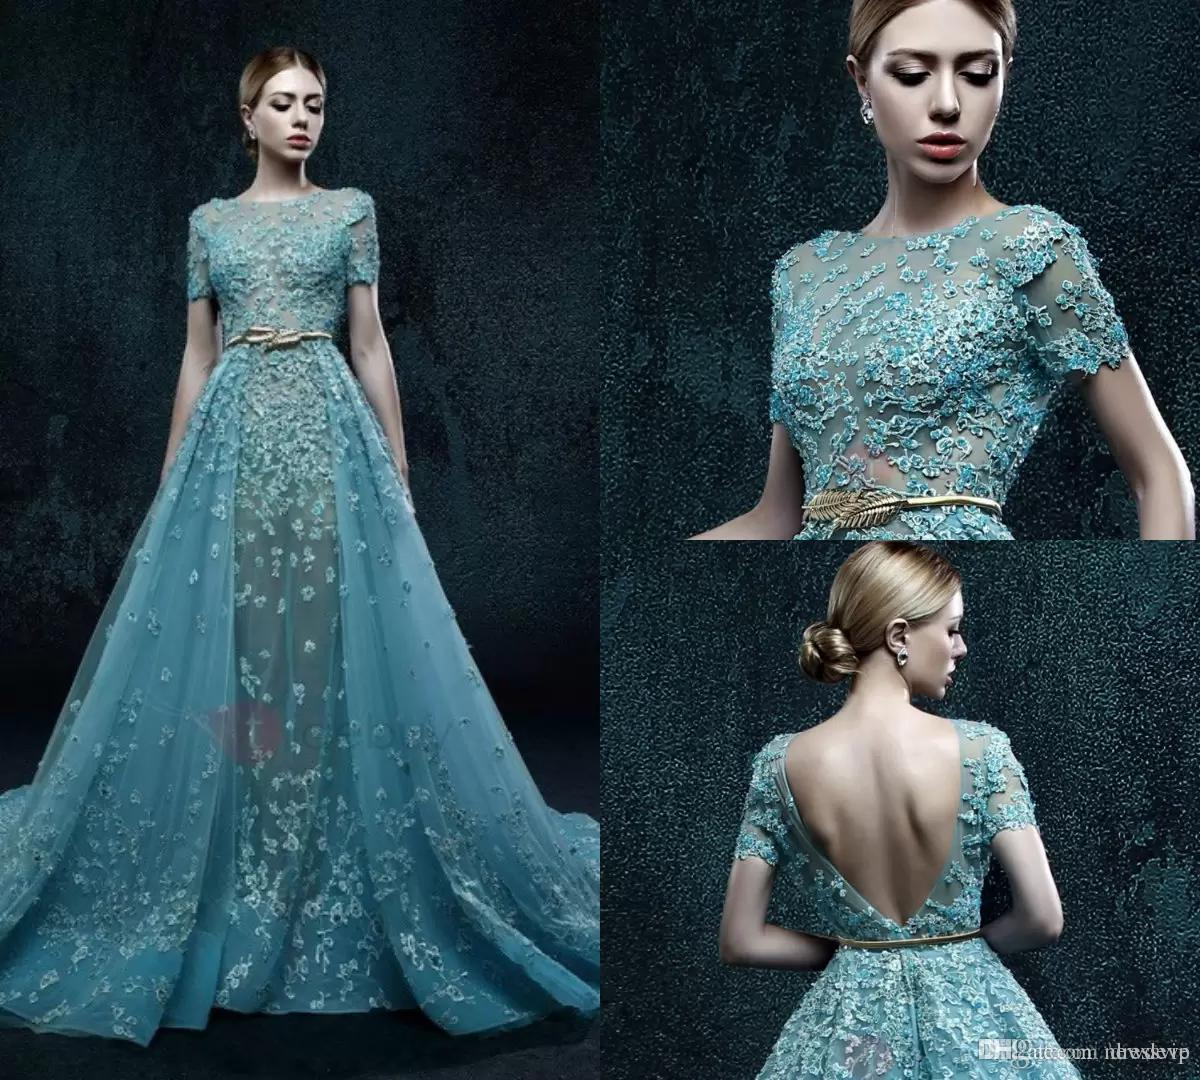 b752a30d9a Dramatic Zuhair Murad Evening Dresses Jewel Lace Applique Beads Backless  Party Gown Custom Made Illusion Sash Long Prom Dresses Quinceanera Halter  Neck ...